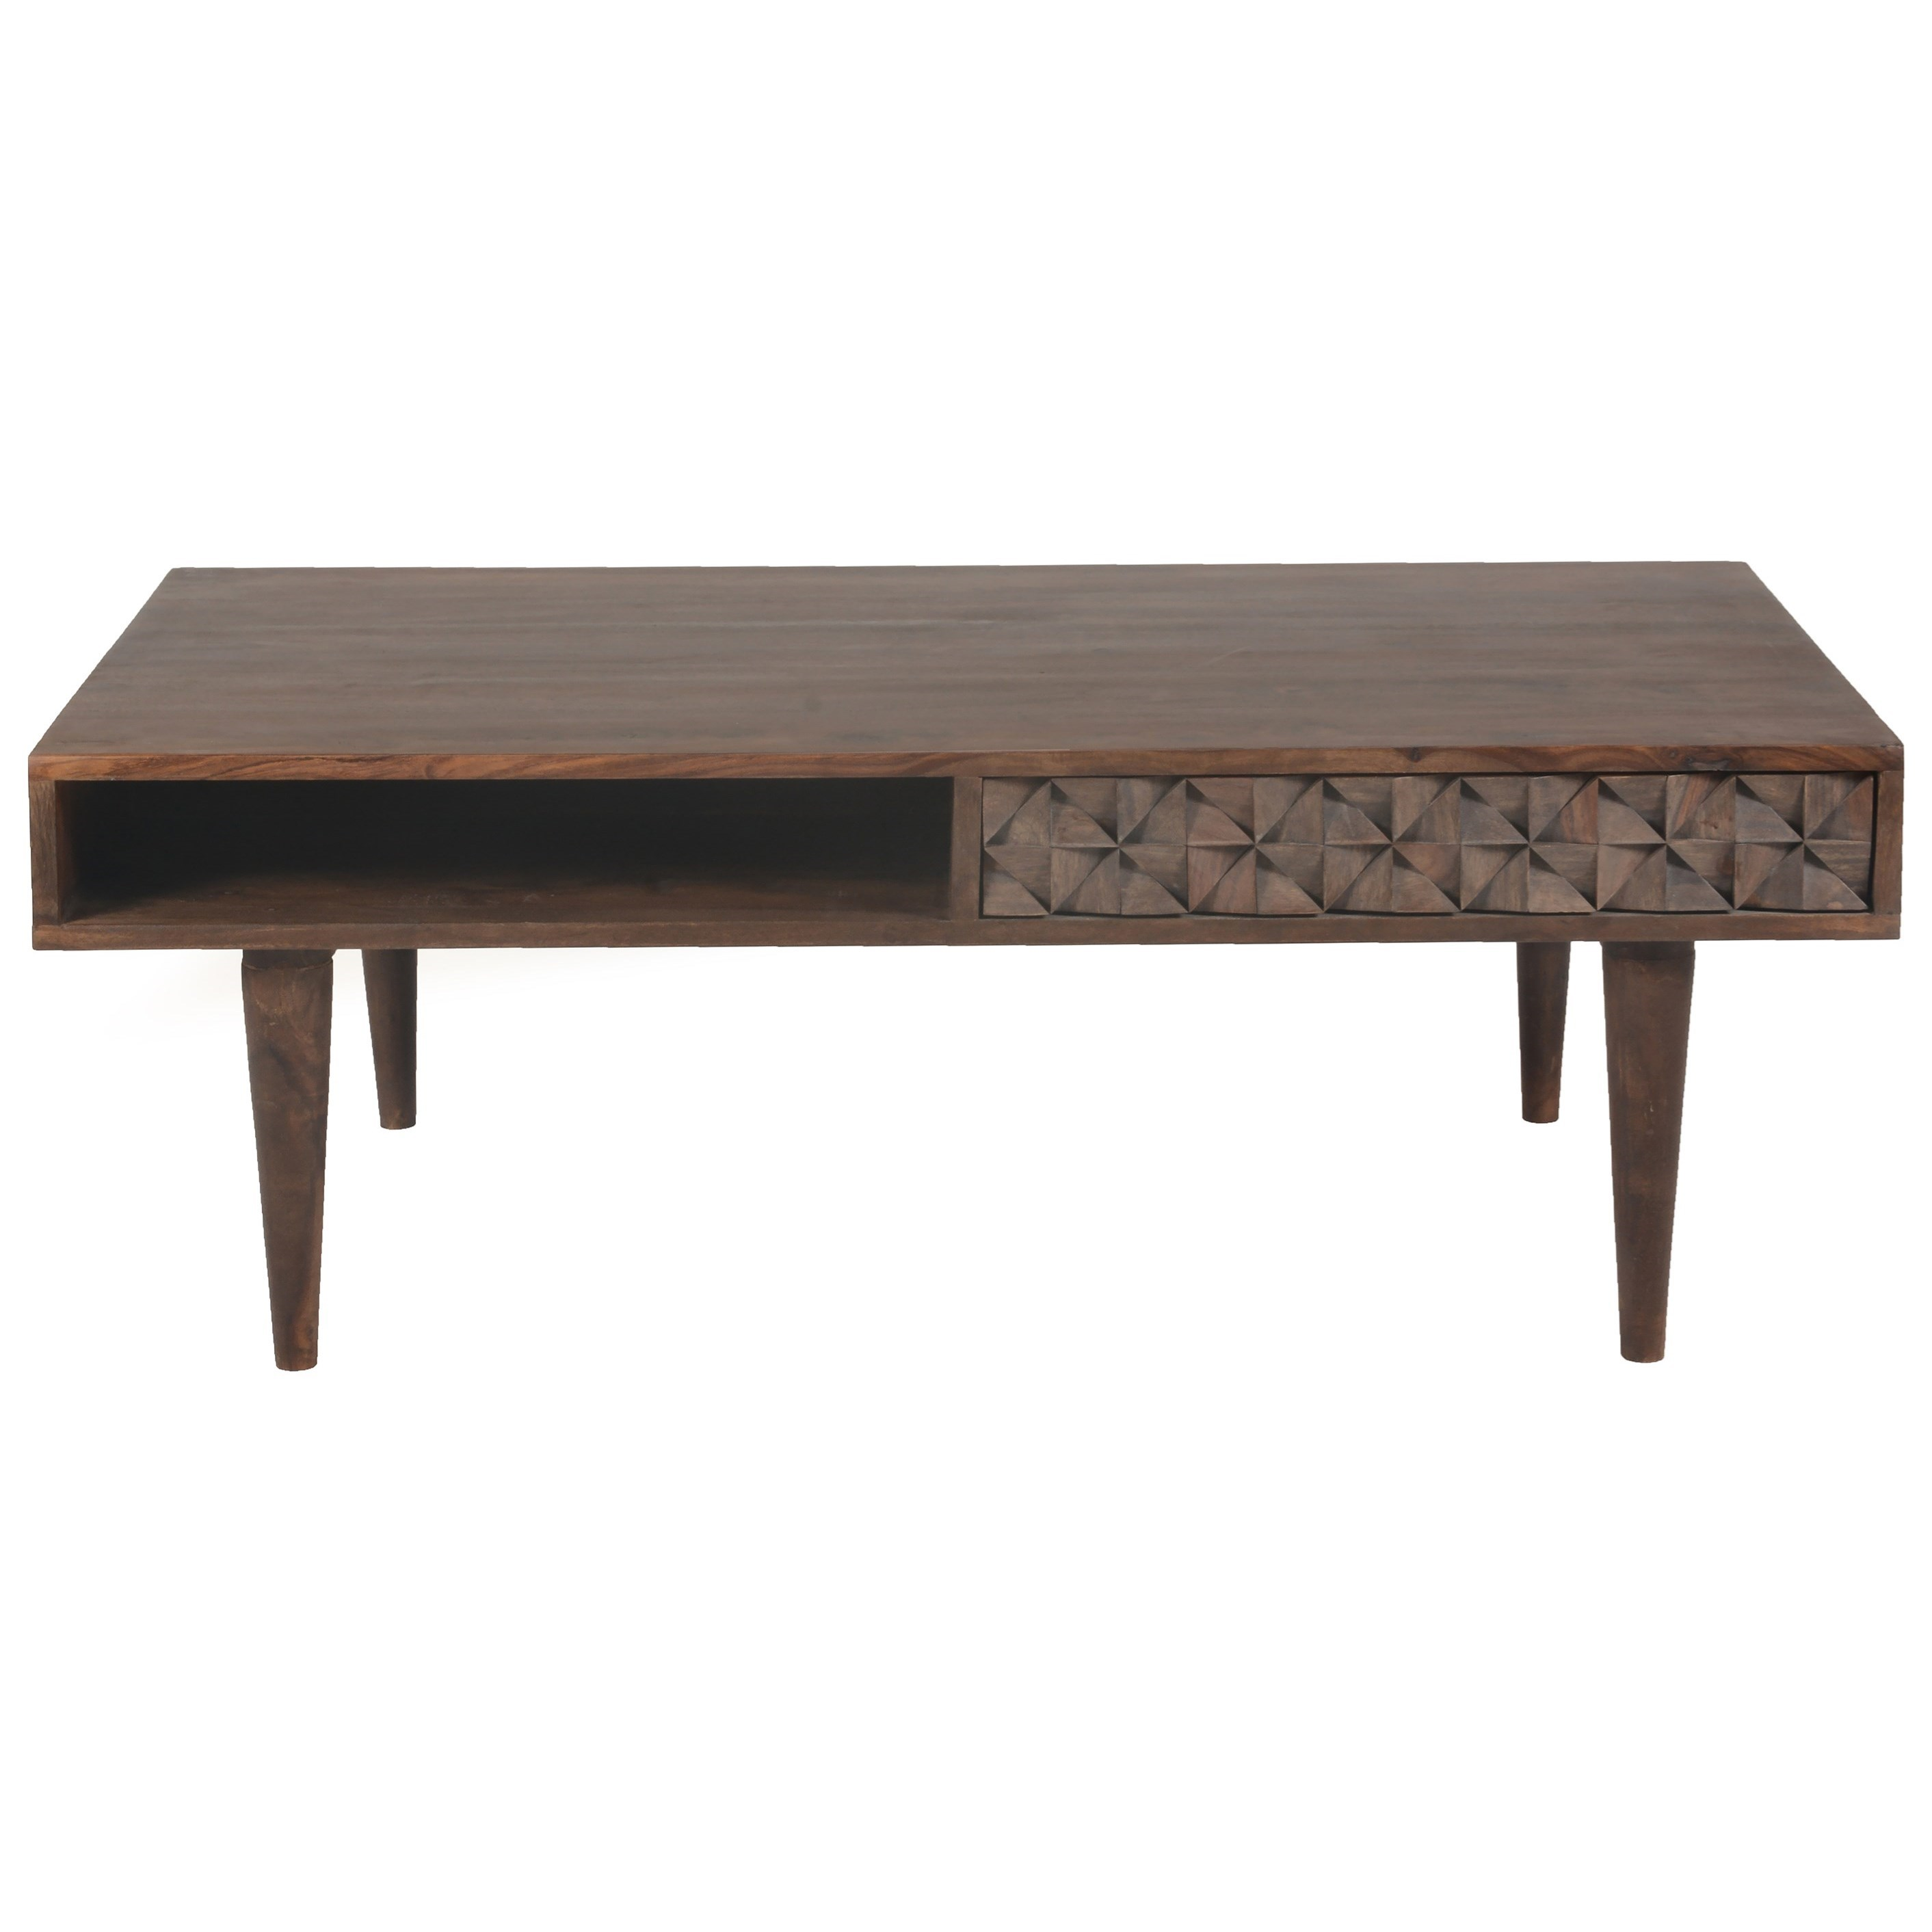 Moe's Home Collection Pablo  2 Drawer Coffee Table - Item Number: BZ-1041-03